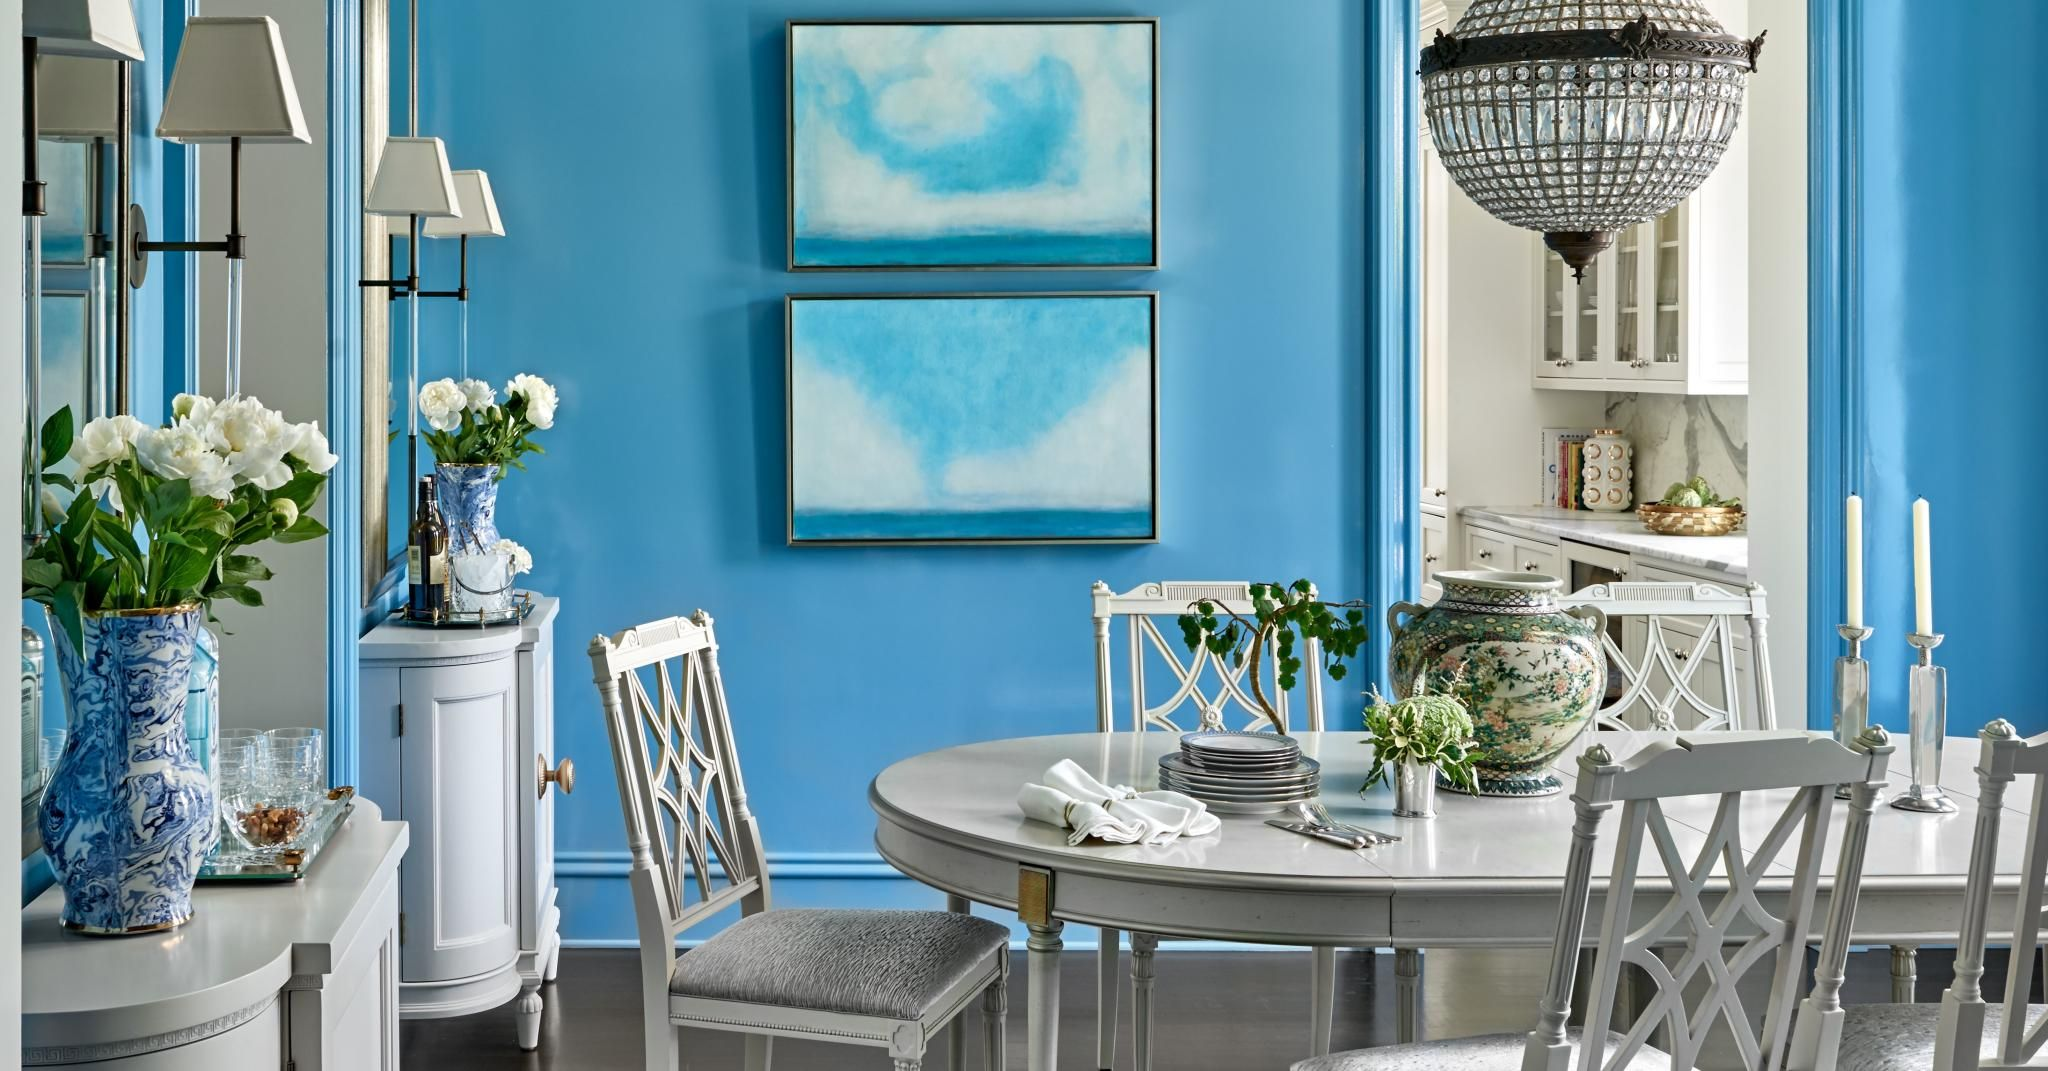 Why I Love Fine Paints of Europe's Cerulean Blue Paint